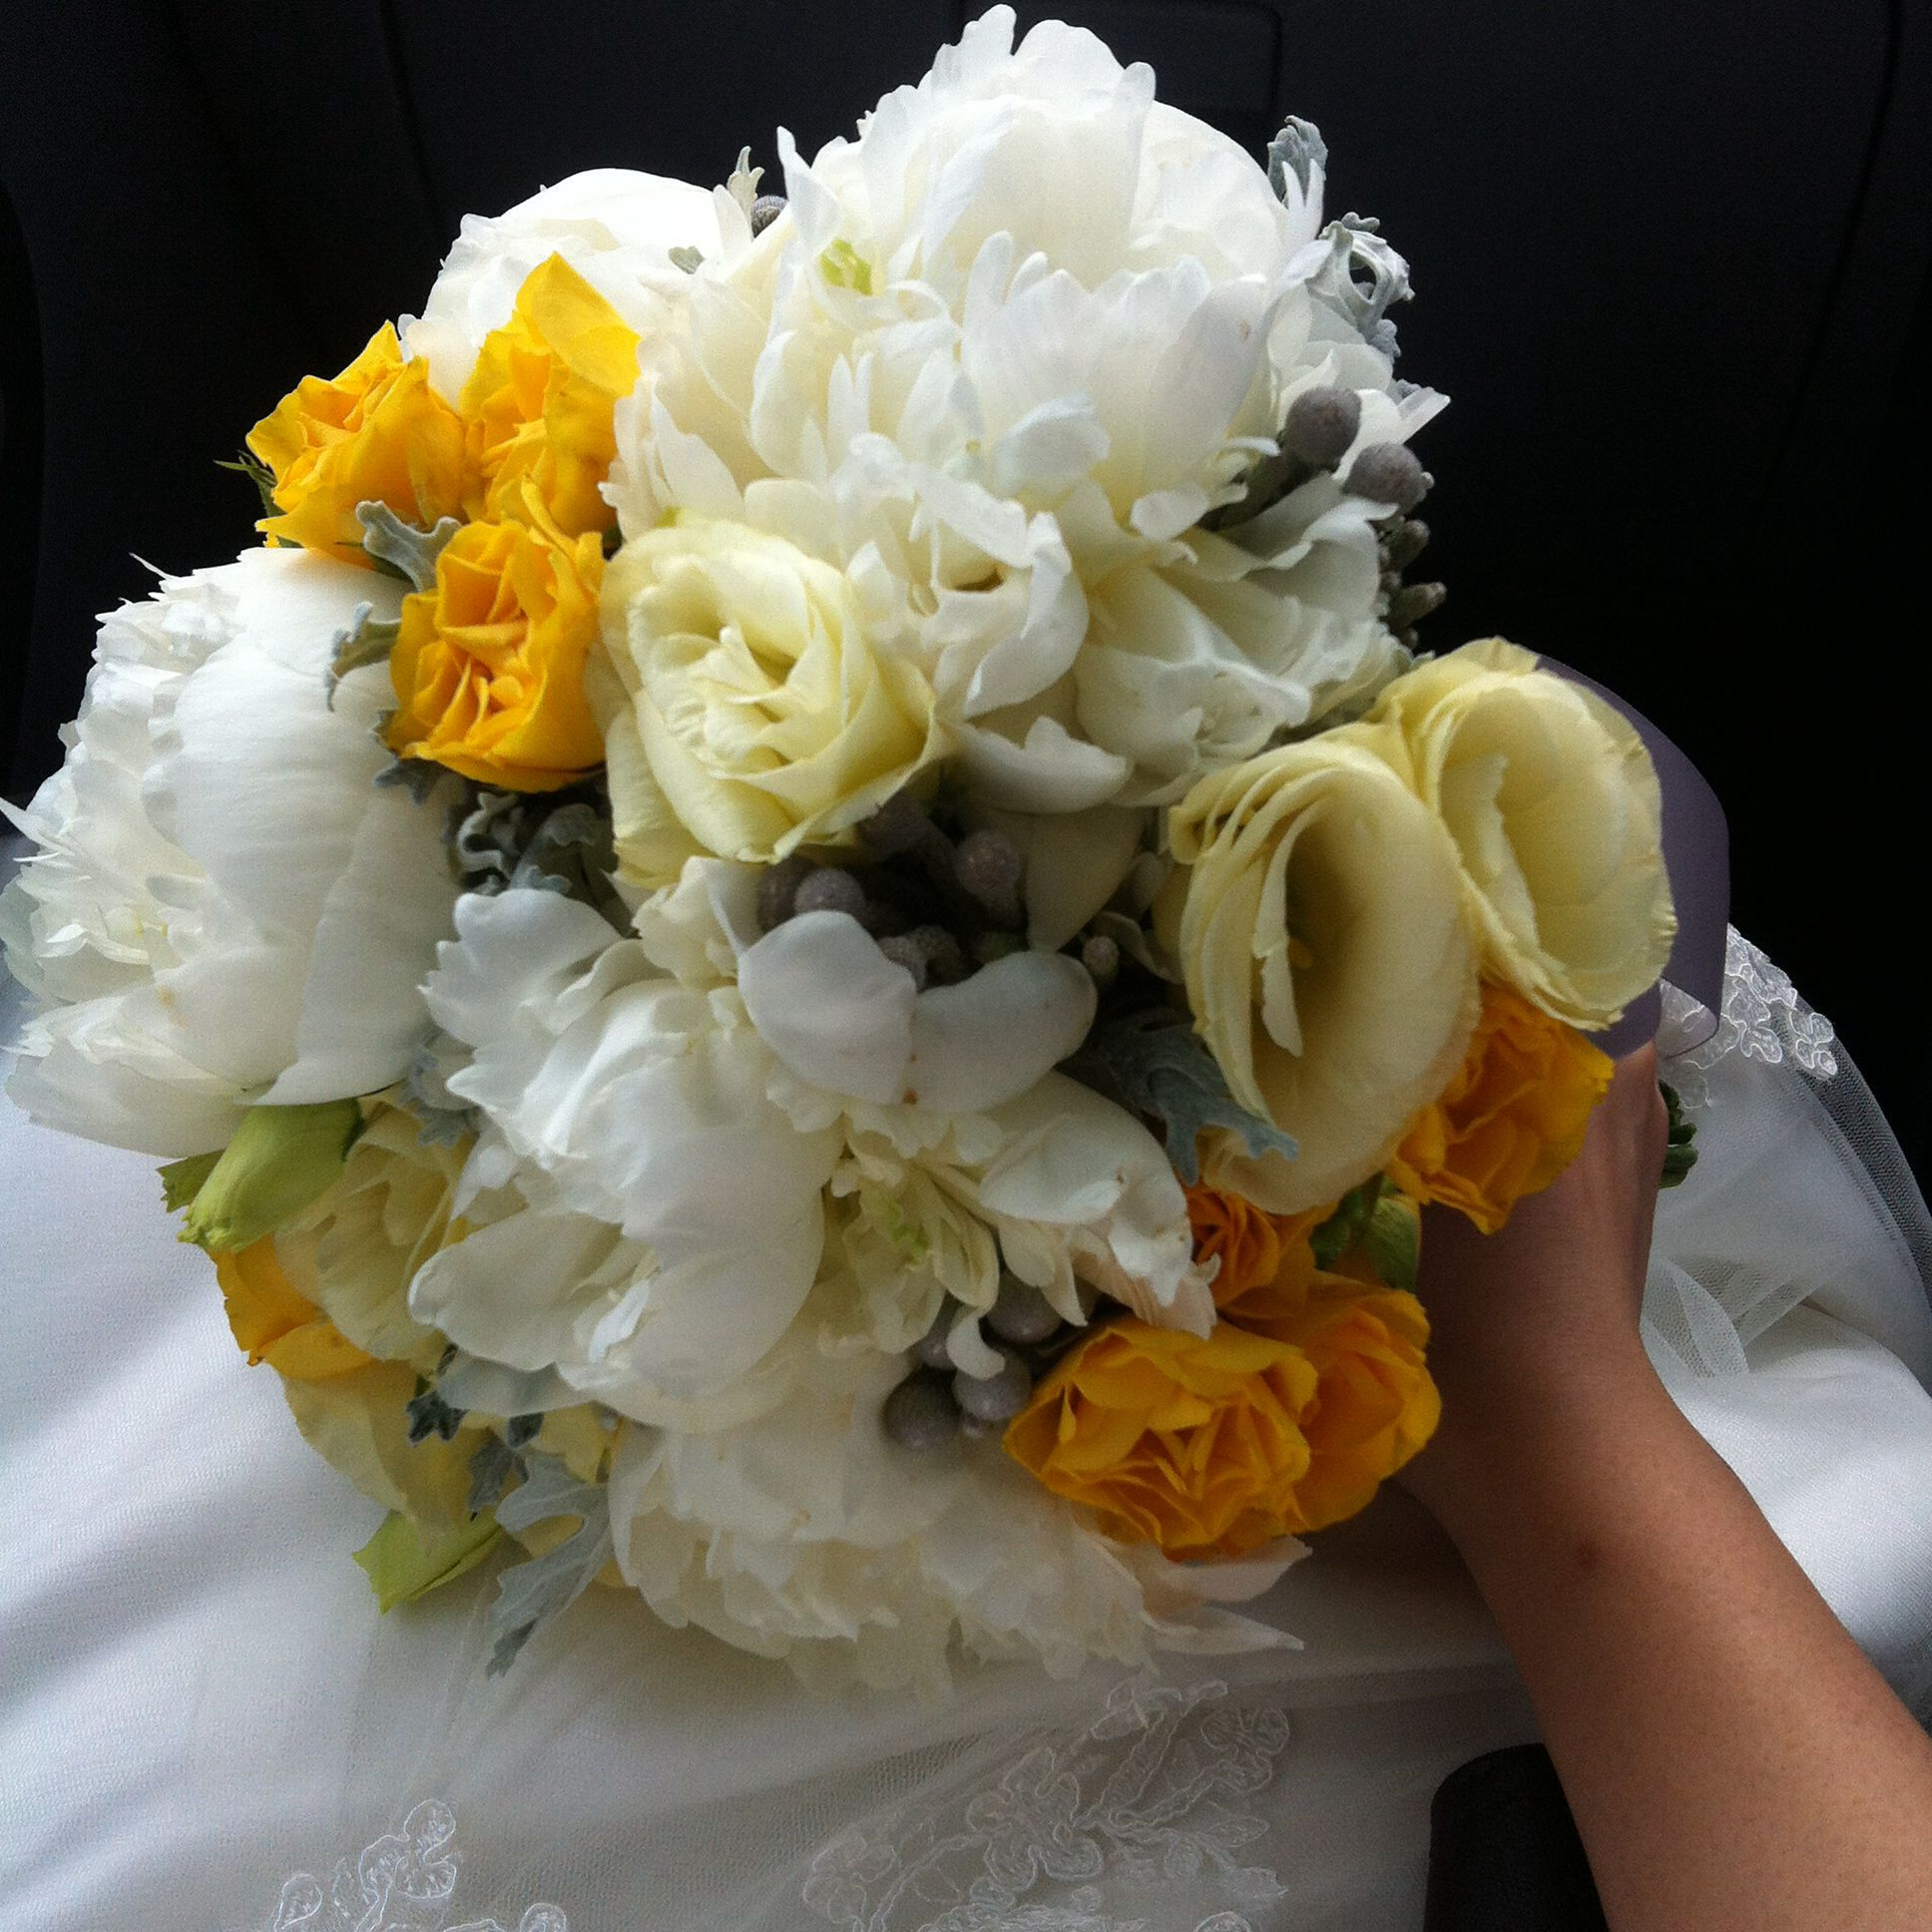 Yellow And Grey Wedding Flowers: Grey And Yellow Wedding Flower Bouquet, White Peony